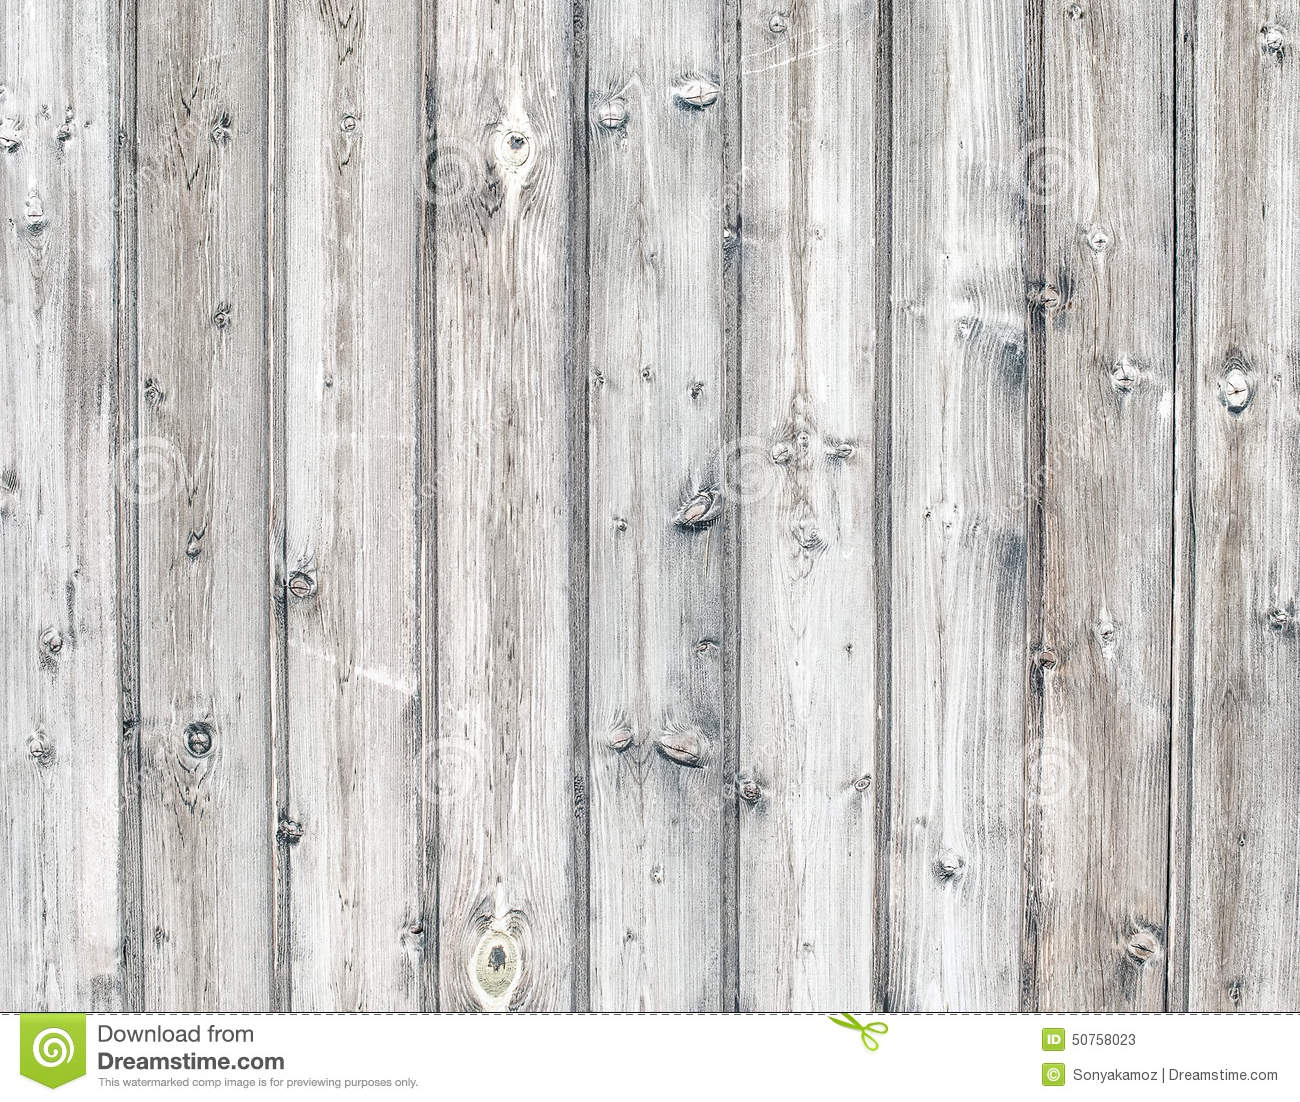 Light Wood Texture Background. White Gray Color. Stock Photo - Image ...